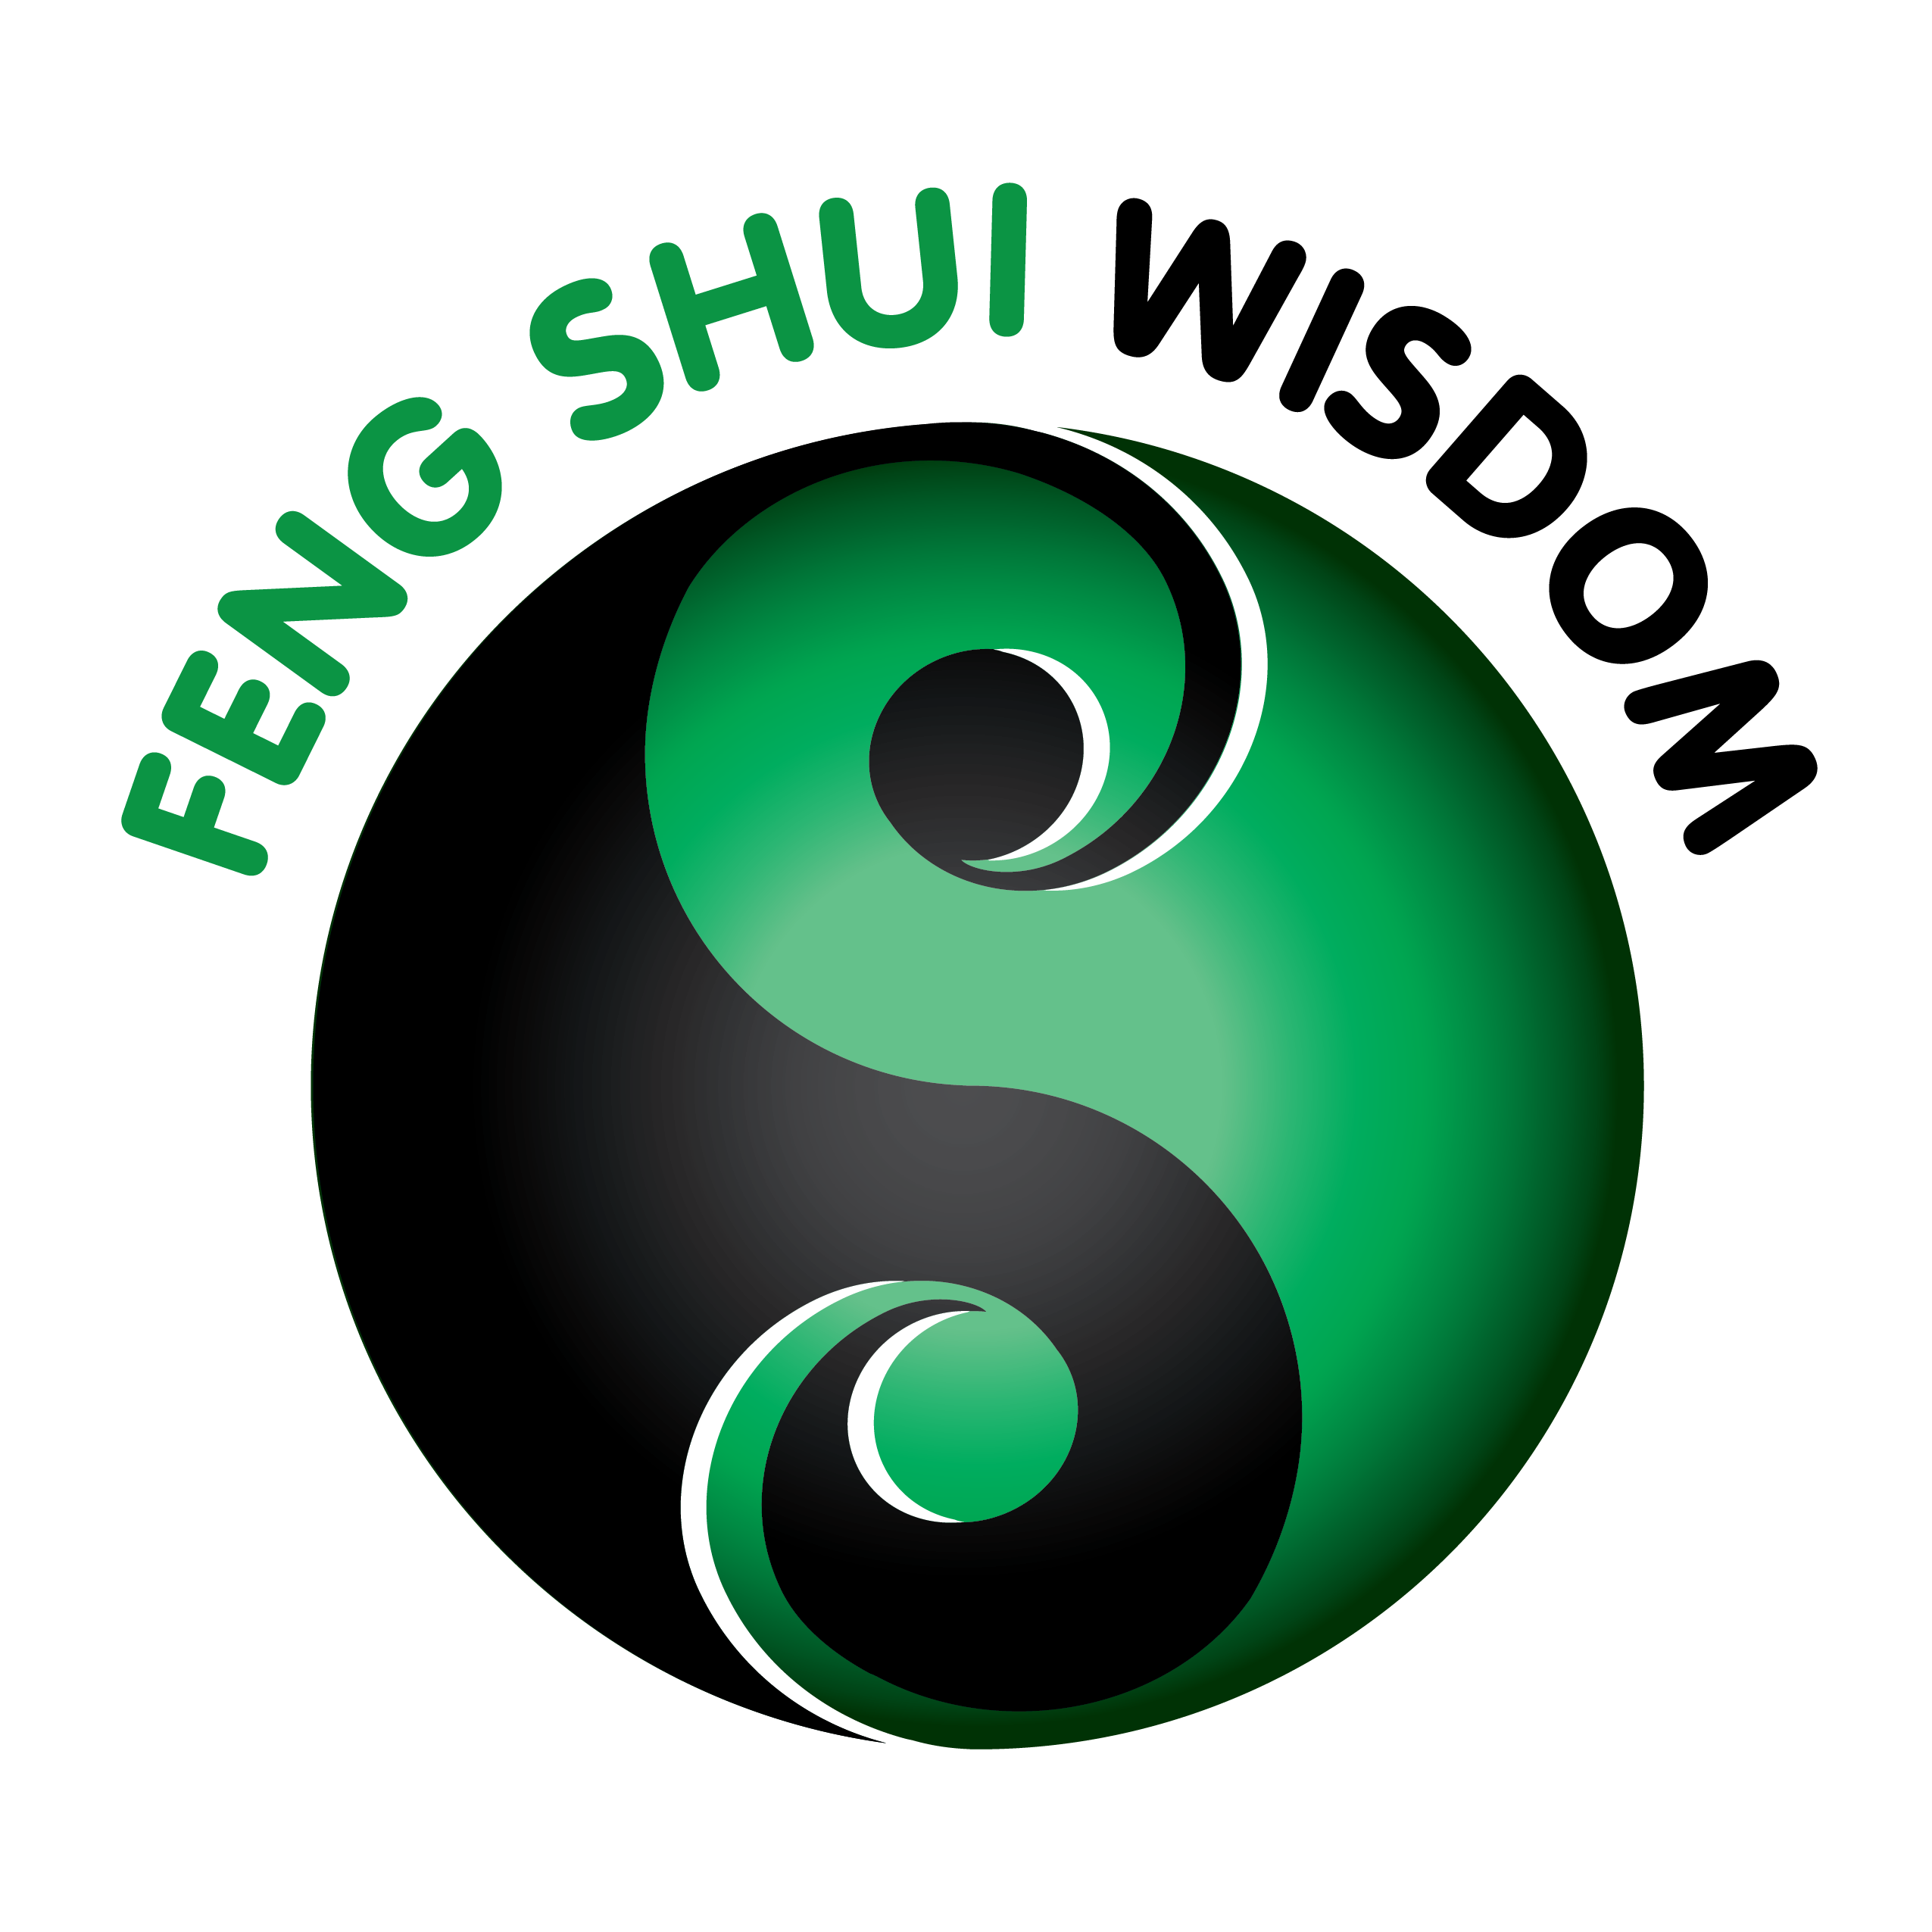 feng shui logo images galleries with a bite. Black Bedroom Furniture Sets. Home Design Ideas